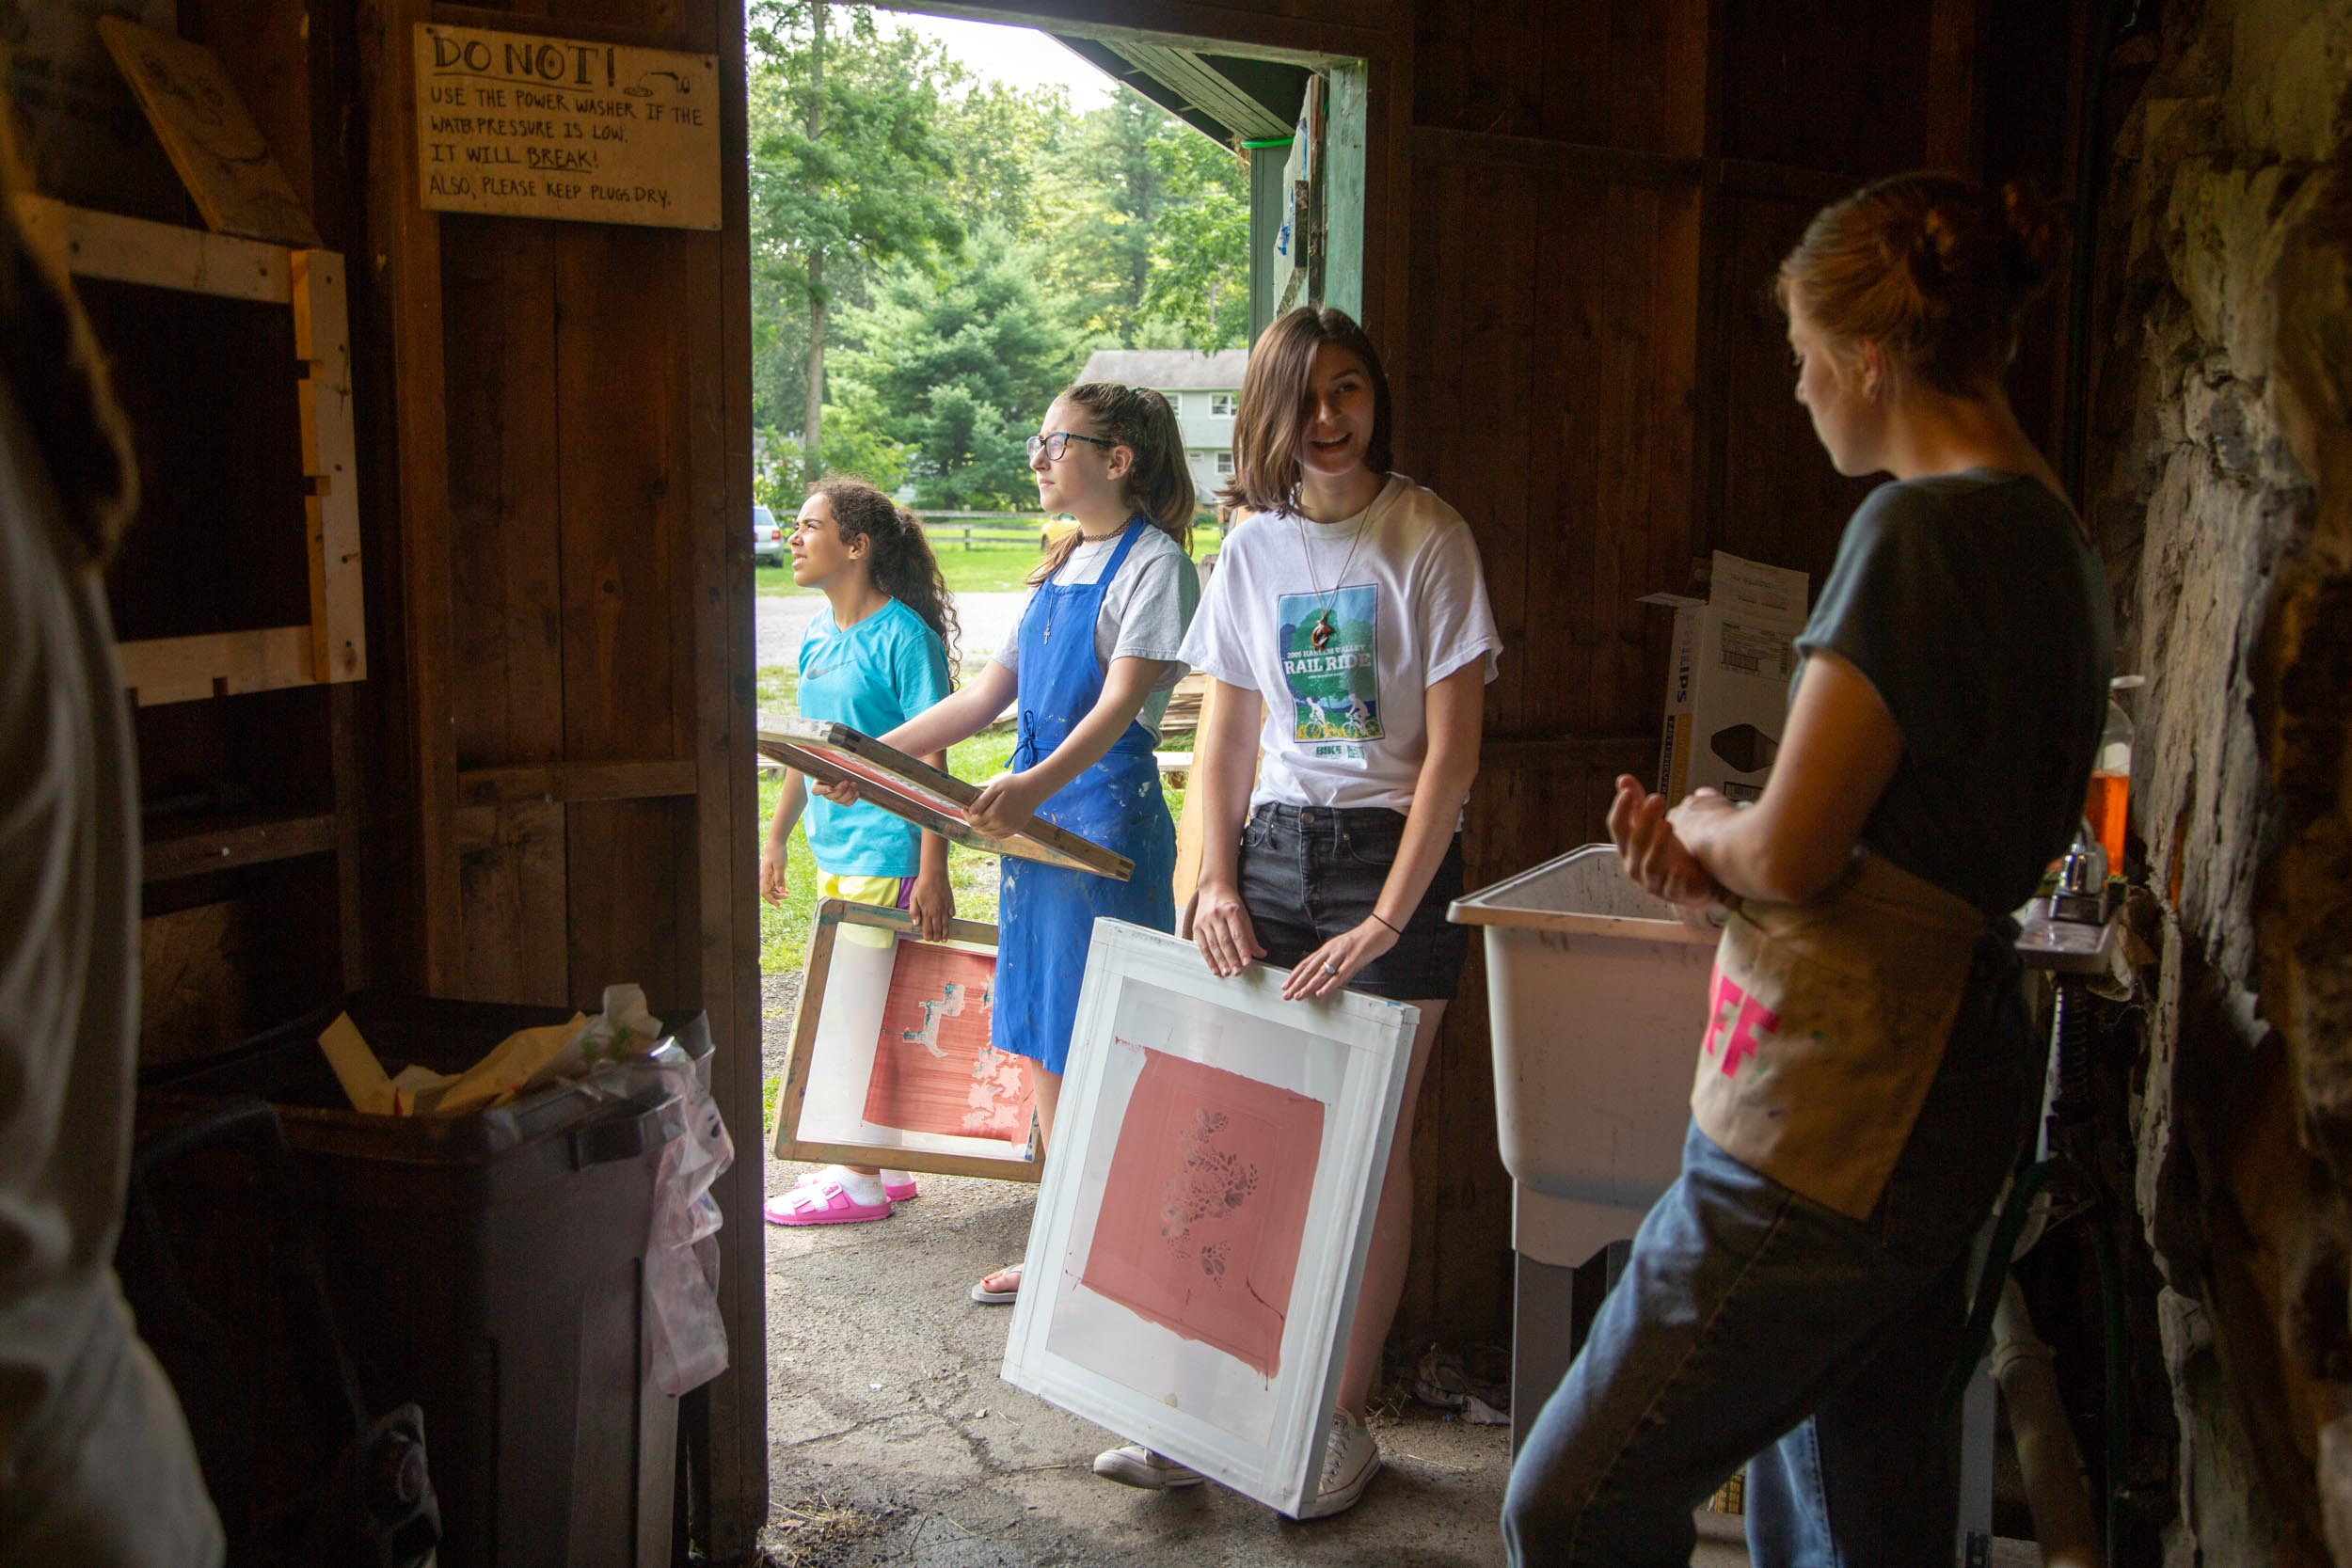 wassaic-project-education-teen-screenprinting-camp-2018-08-15-12-37-01.jpg